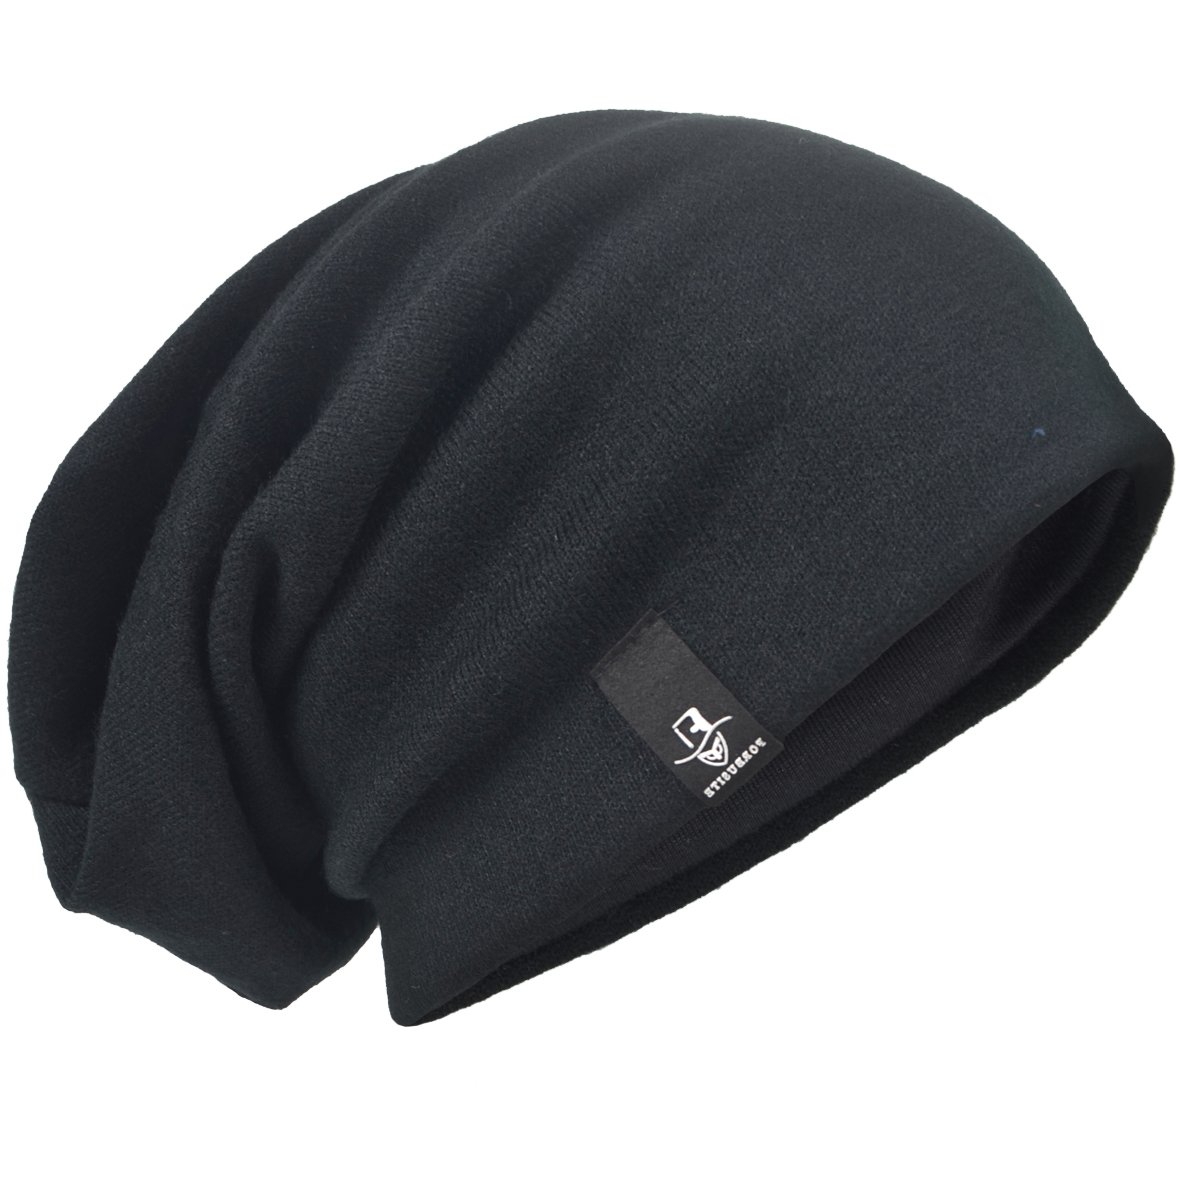 f99eb6df0ffc0 Details about HISSHE Men s Slouch Slouchy Beanie Oversize Summer Winter  Skull Cap N010 (Black)